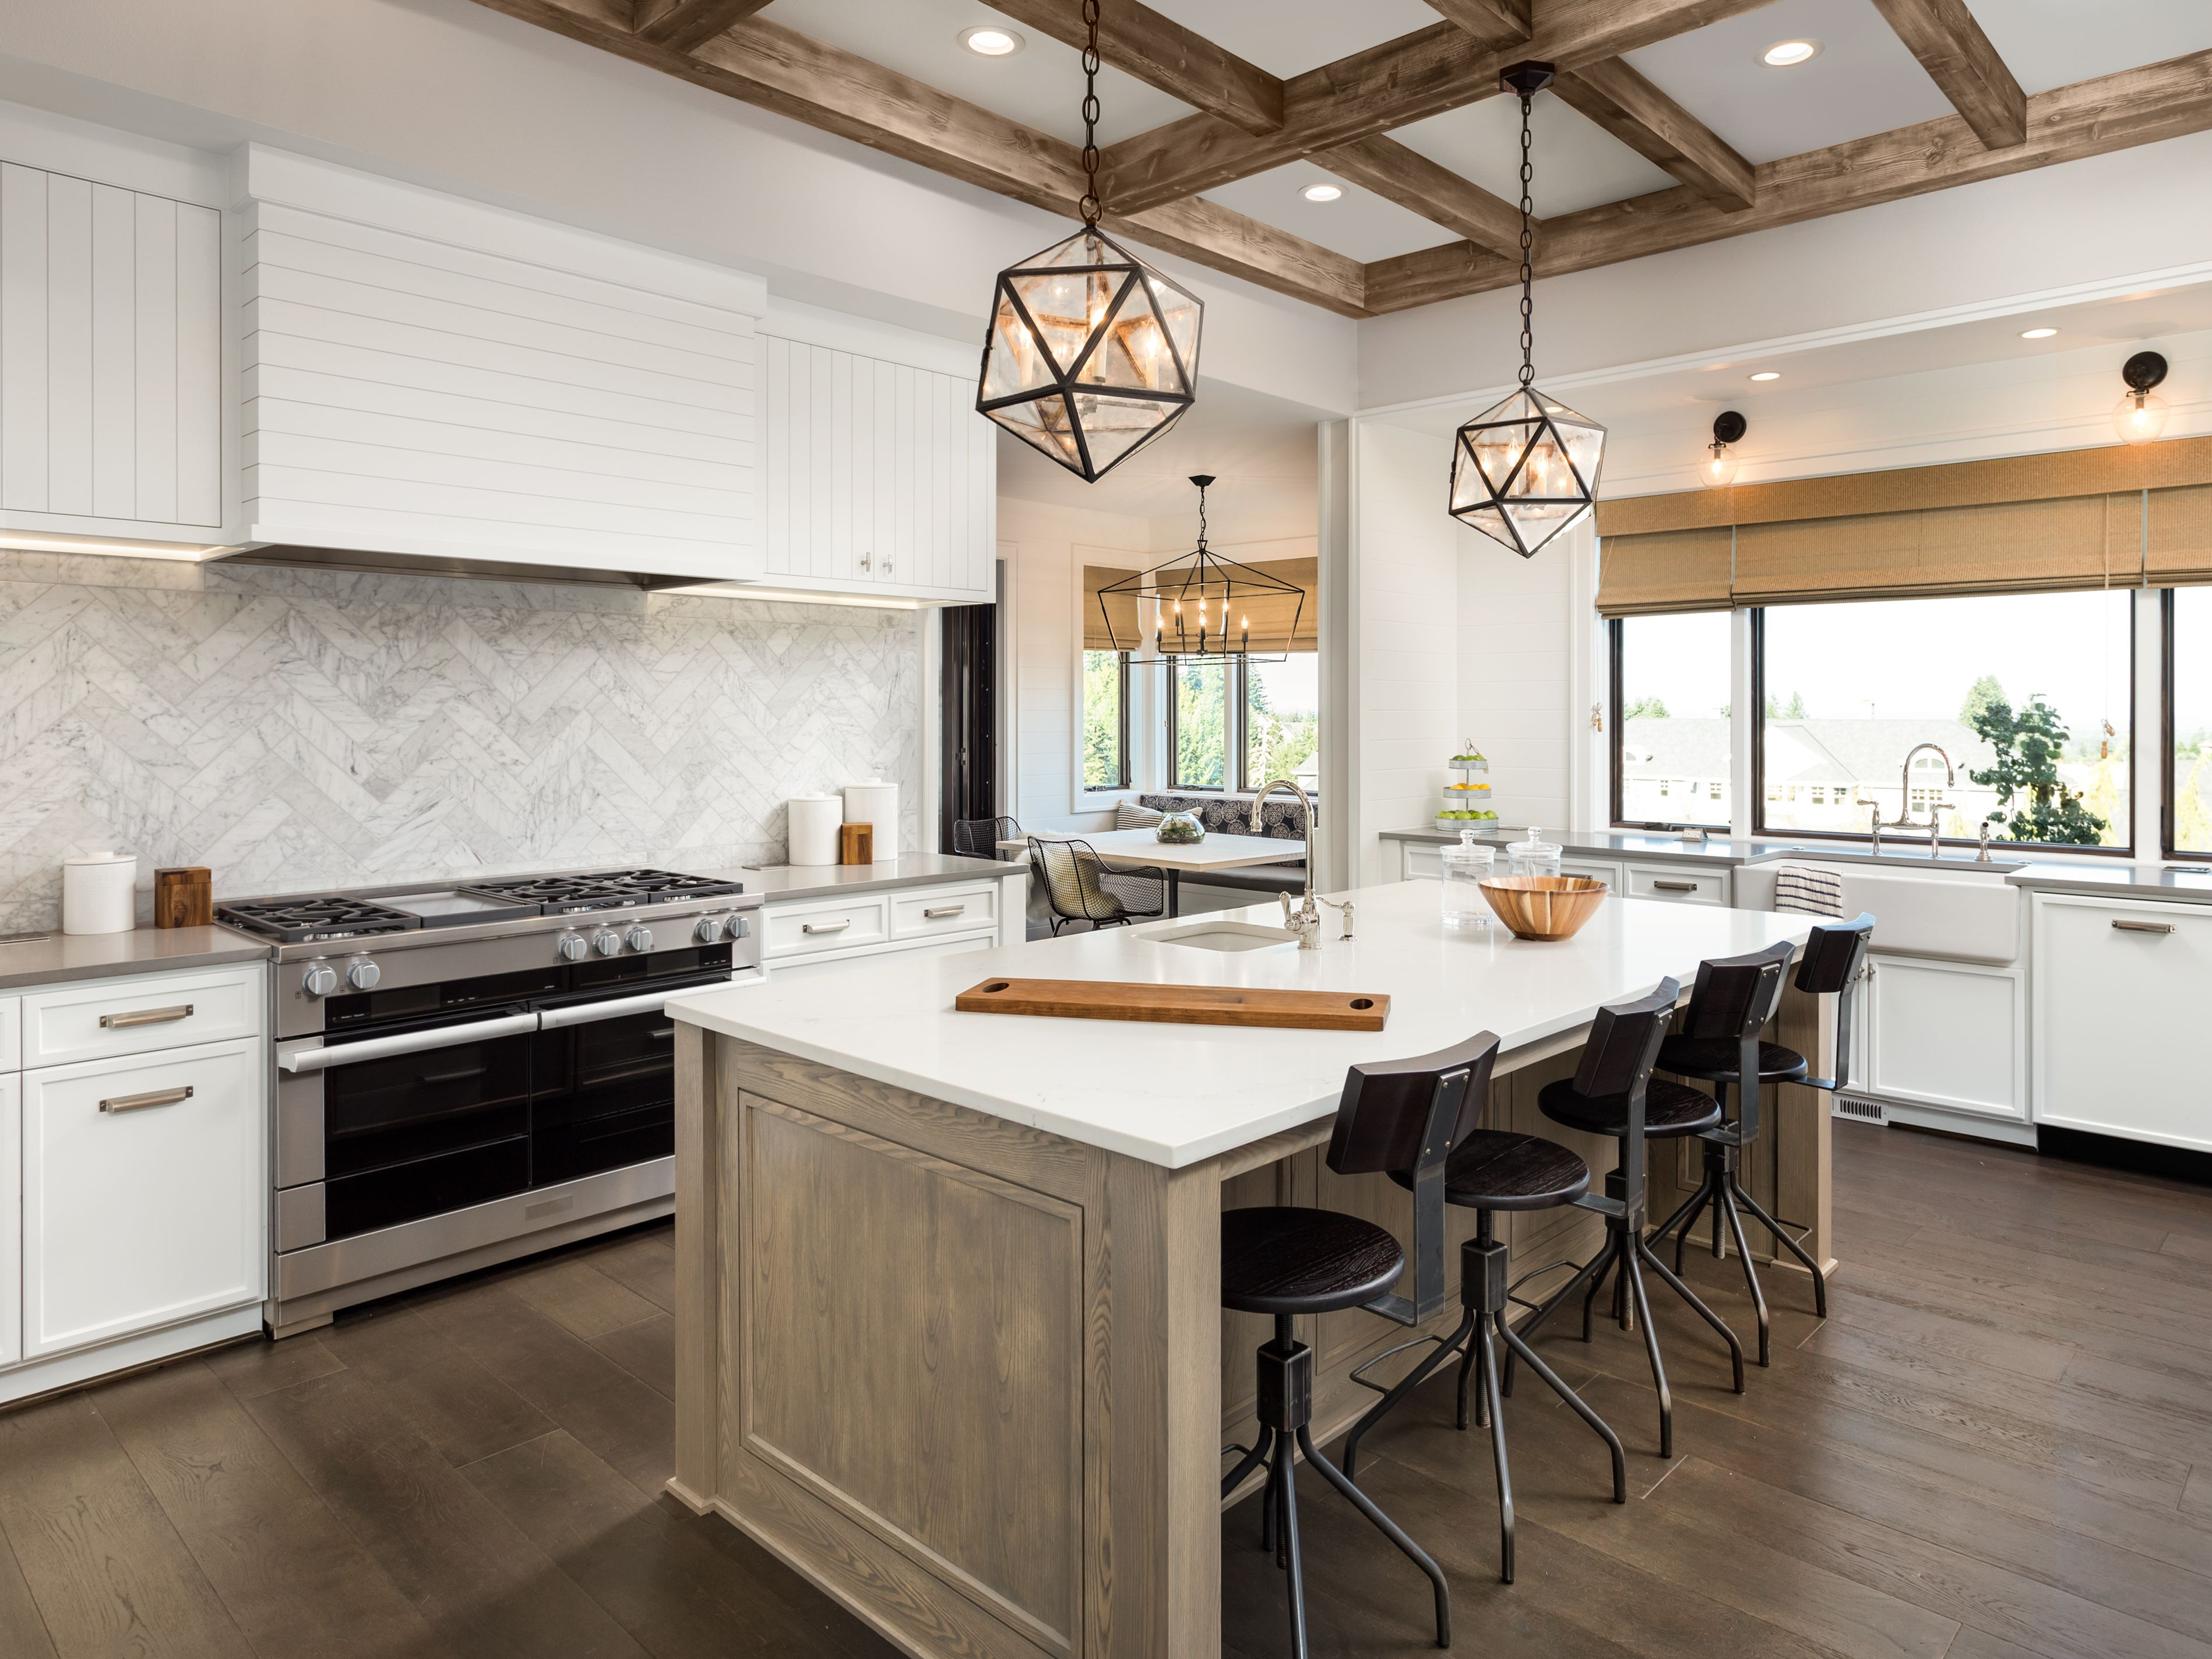 Function And Style The Basics Of Recessed Lighting